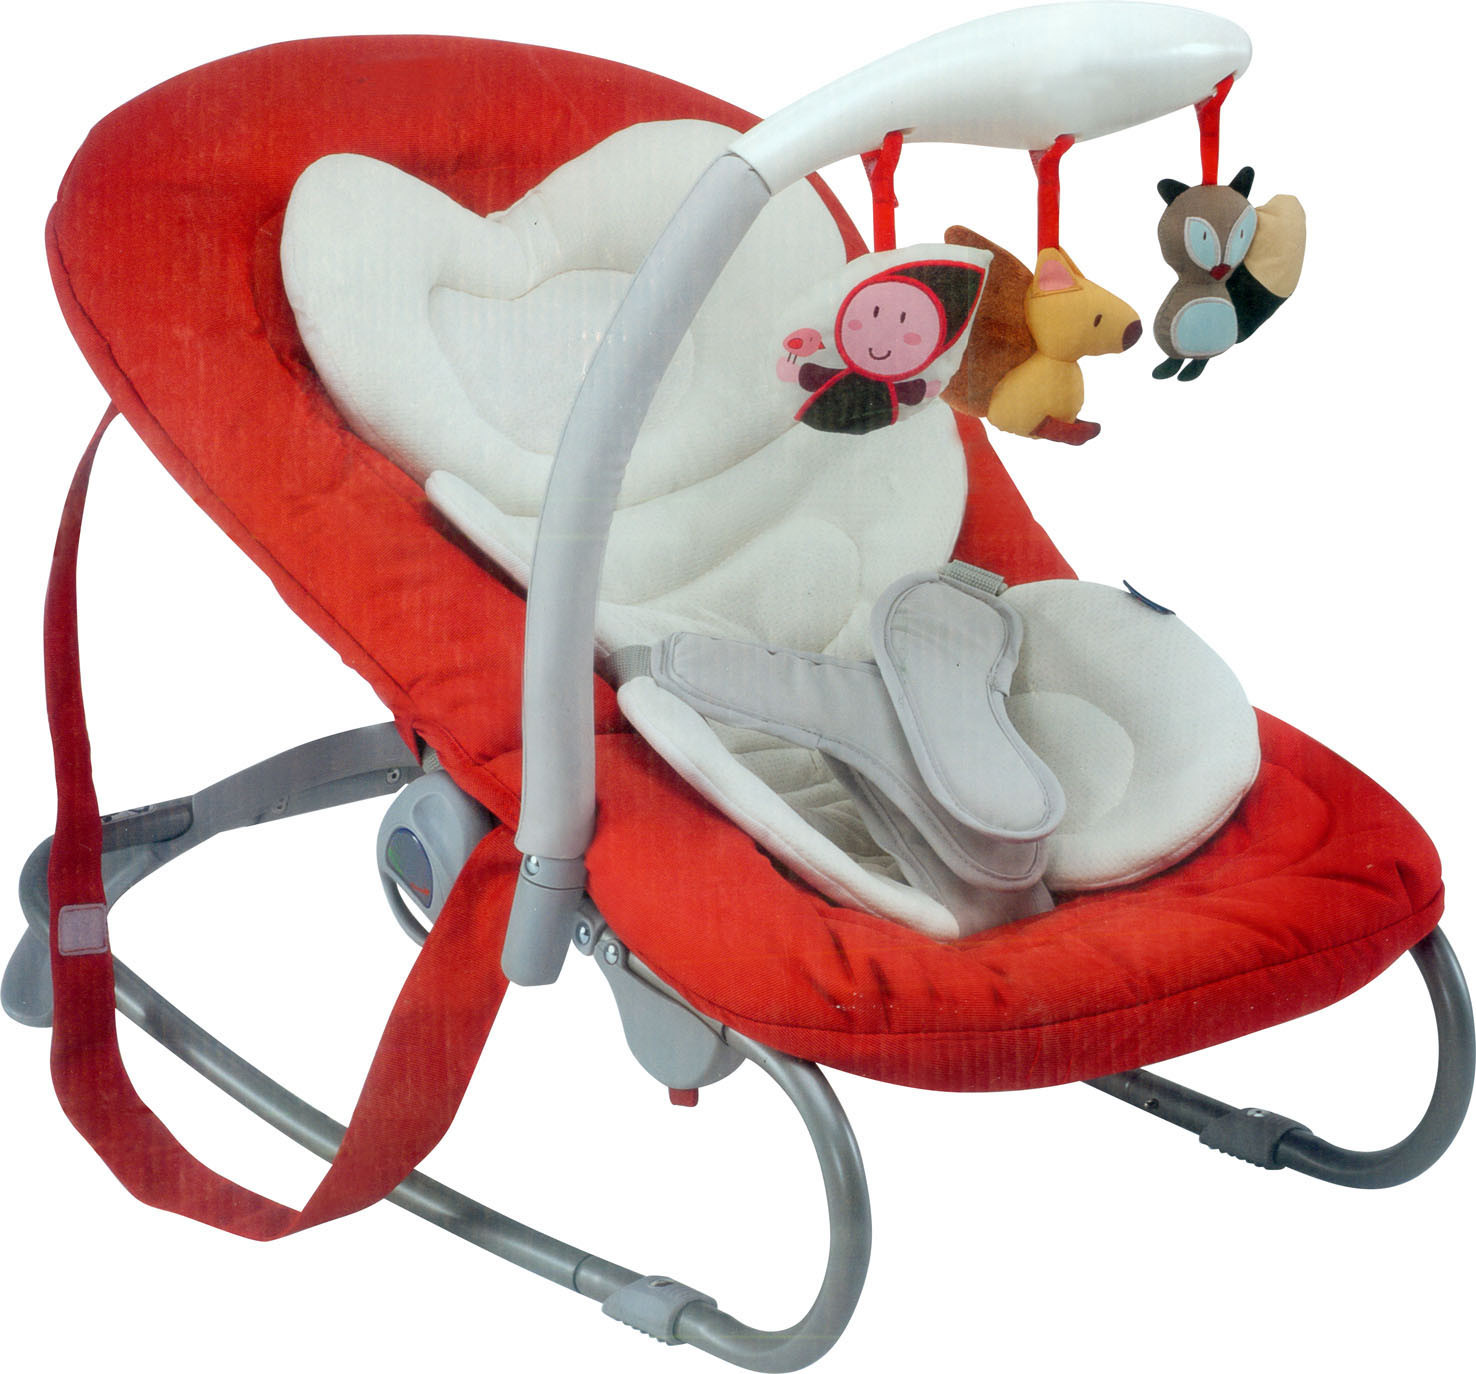 Adjustable Cradle & Soothe Soft Baby Bouncer/ Rocker with Music and Vibration En12790 Baby Trace Brand